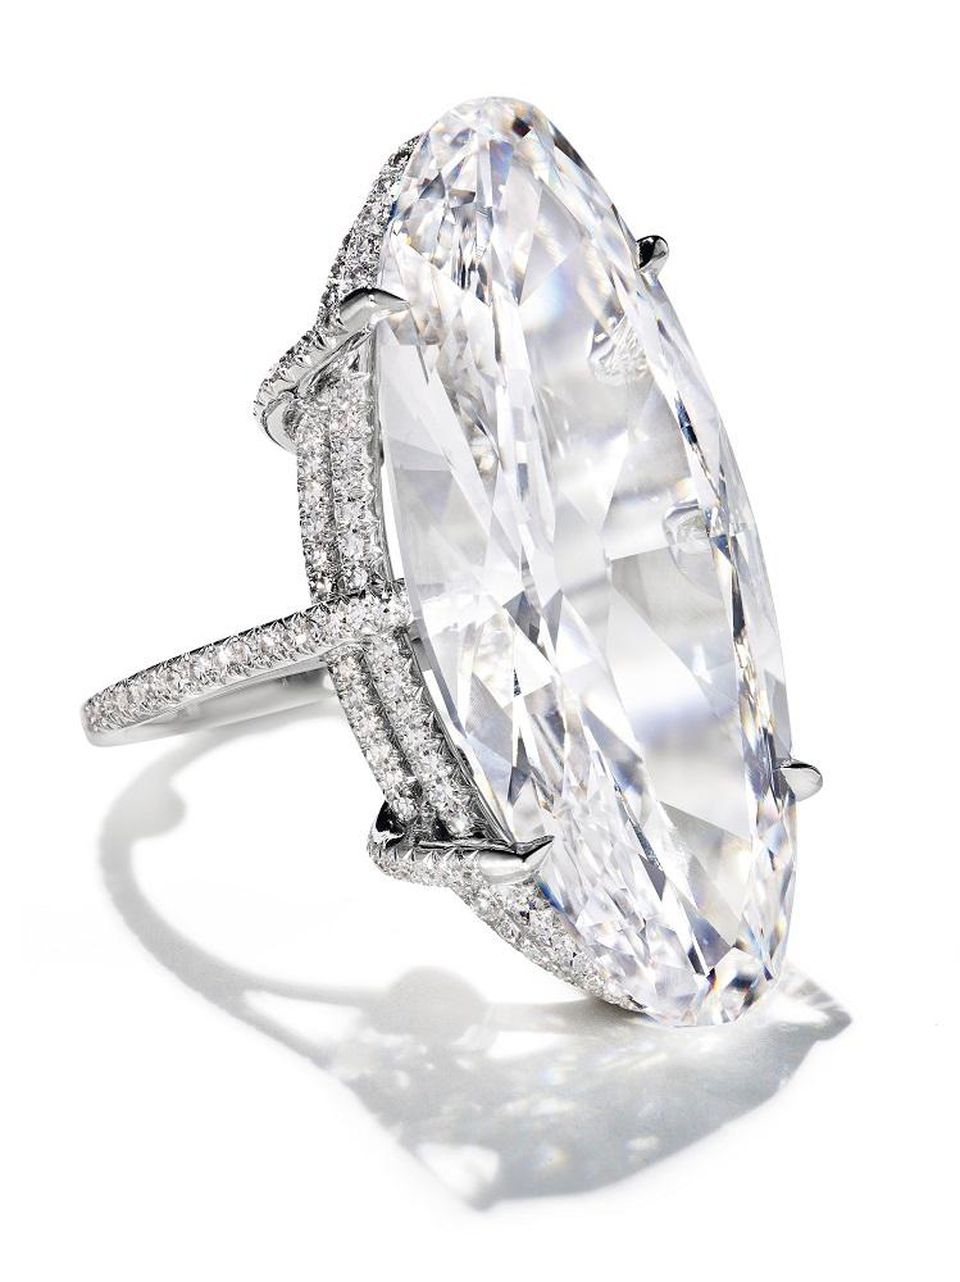 A diamond thread elongated oval brilliant-cut diamond ring.